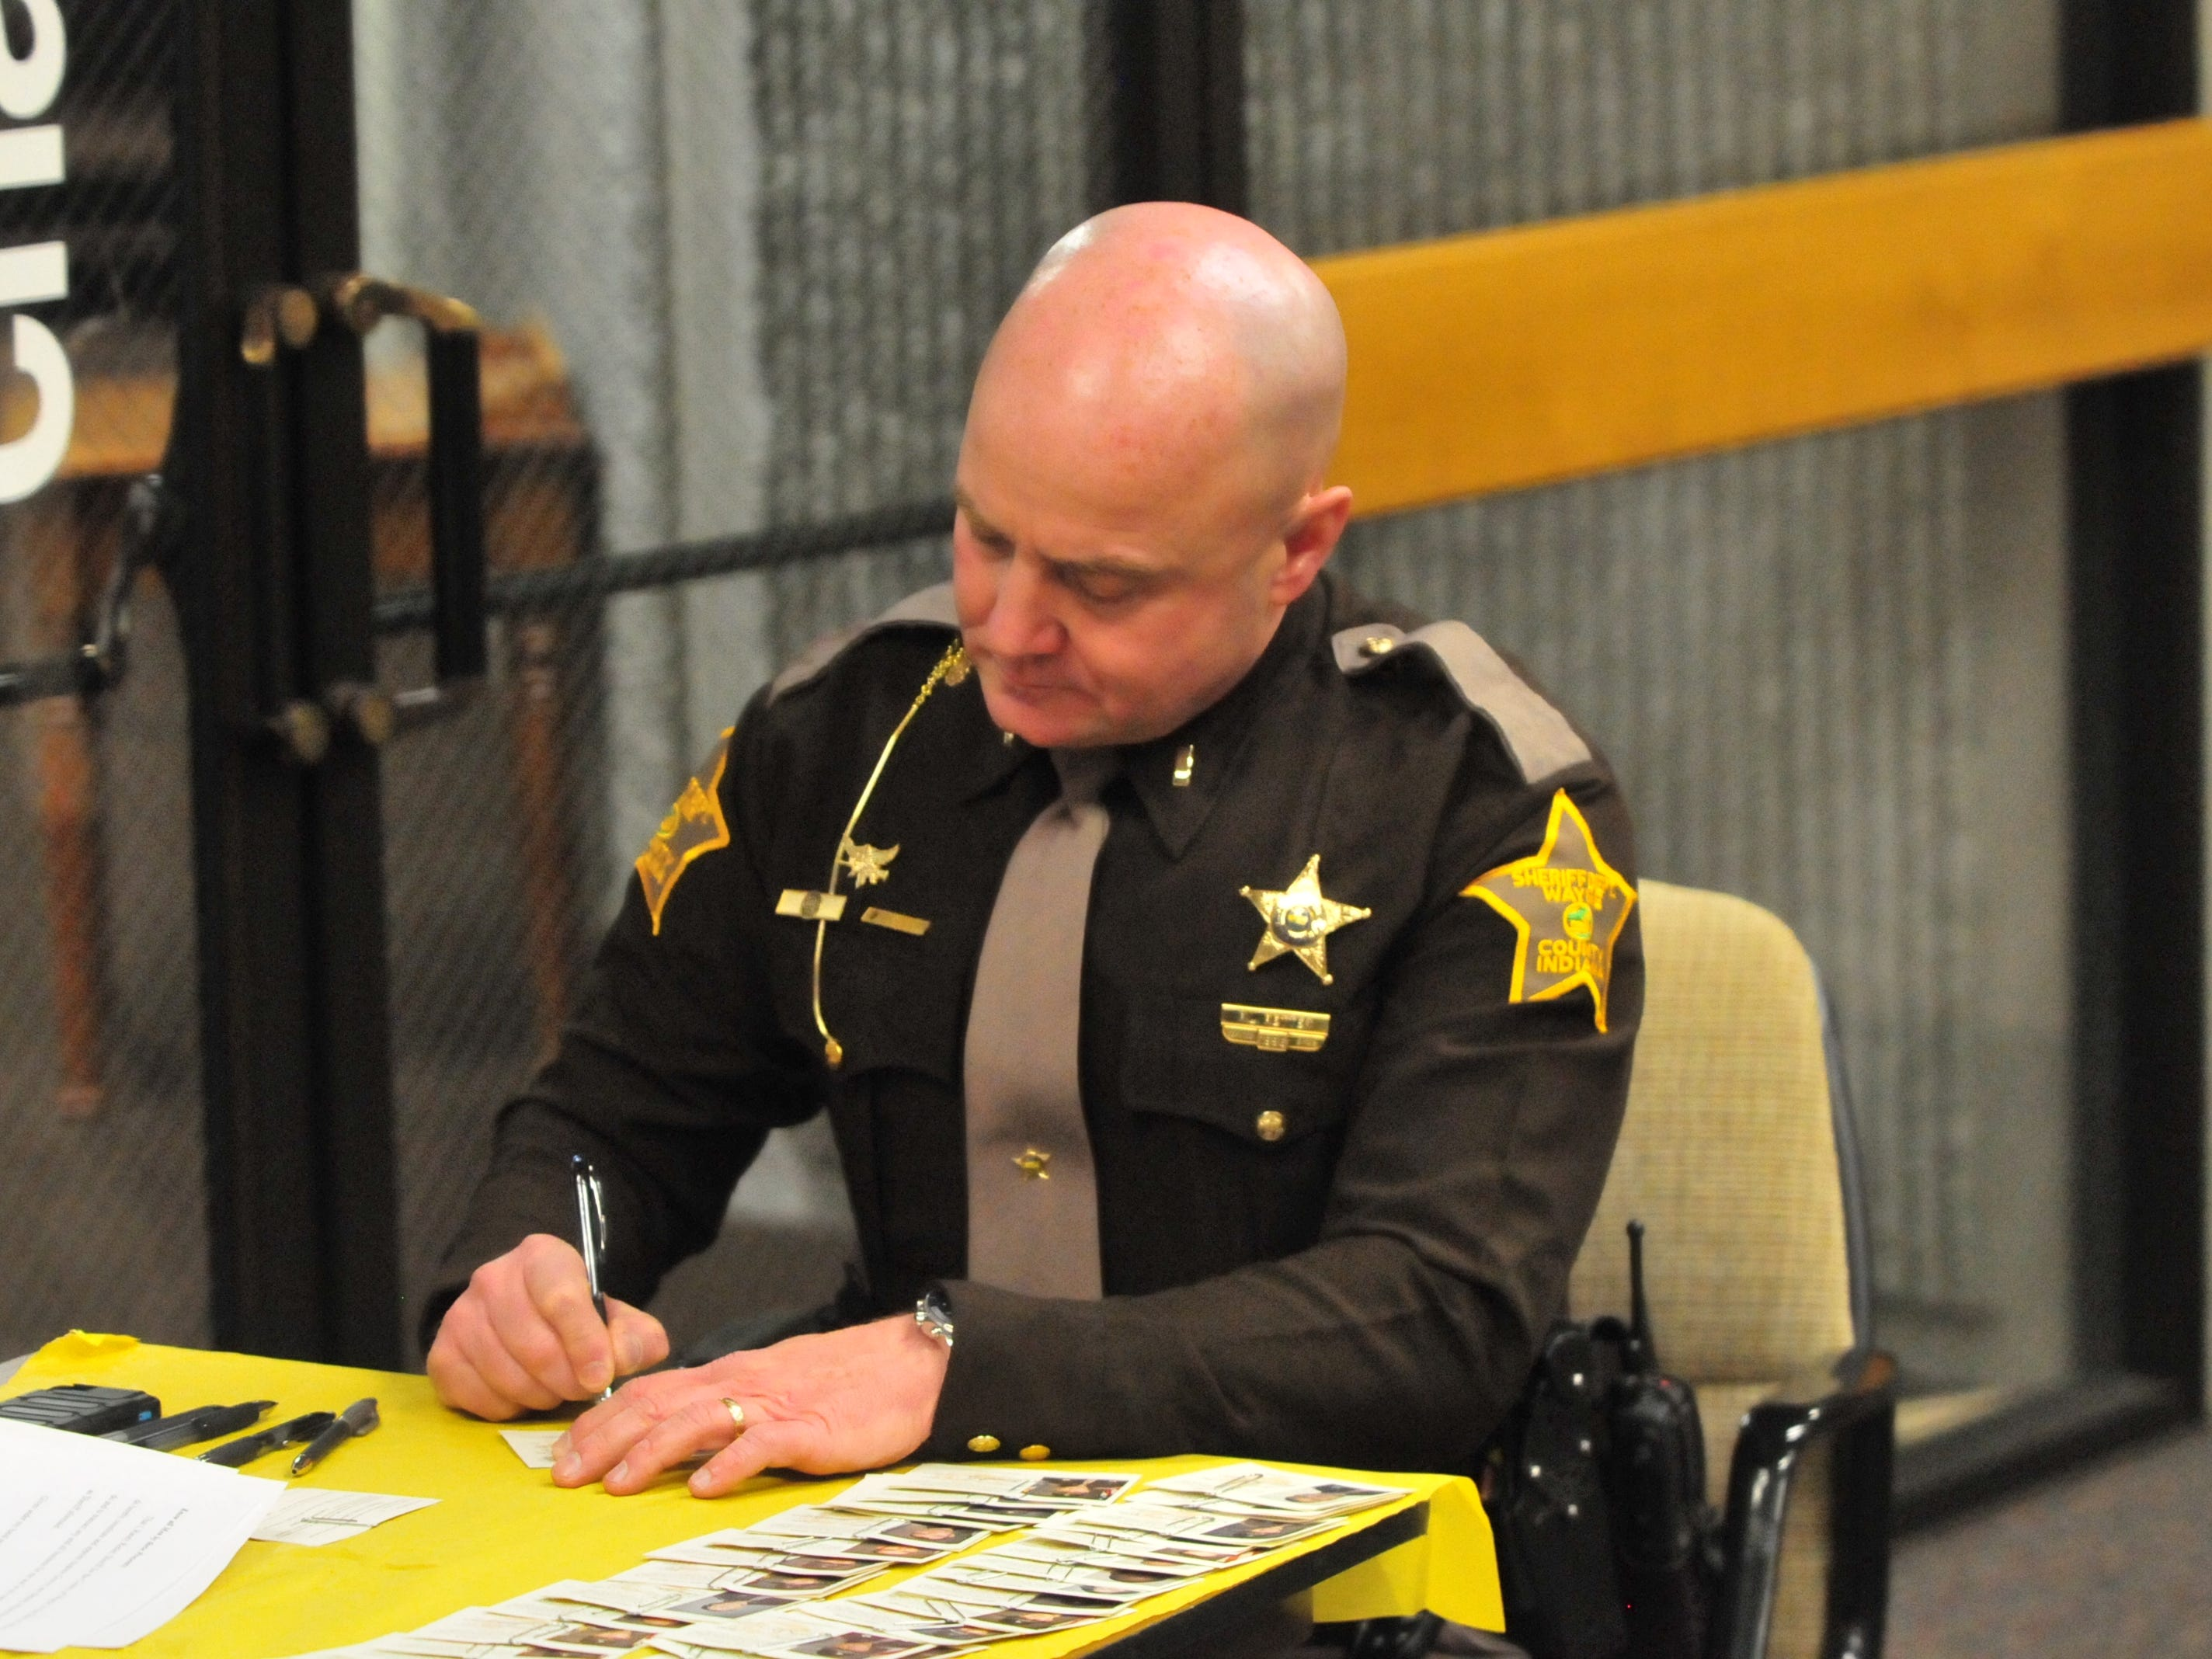 Lt. Randy Retter, the sheriff-elect, signs new identification cards for Wayne County Sheriff's Office personnel Friday after a swearing in ceremony.